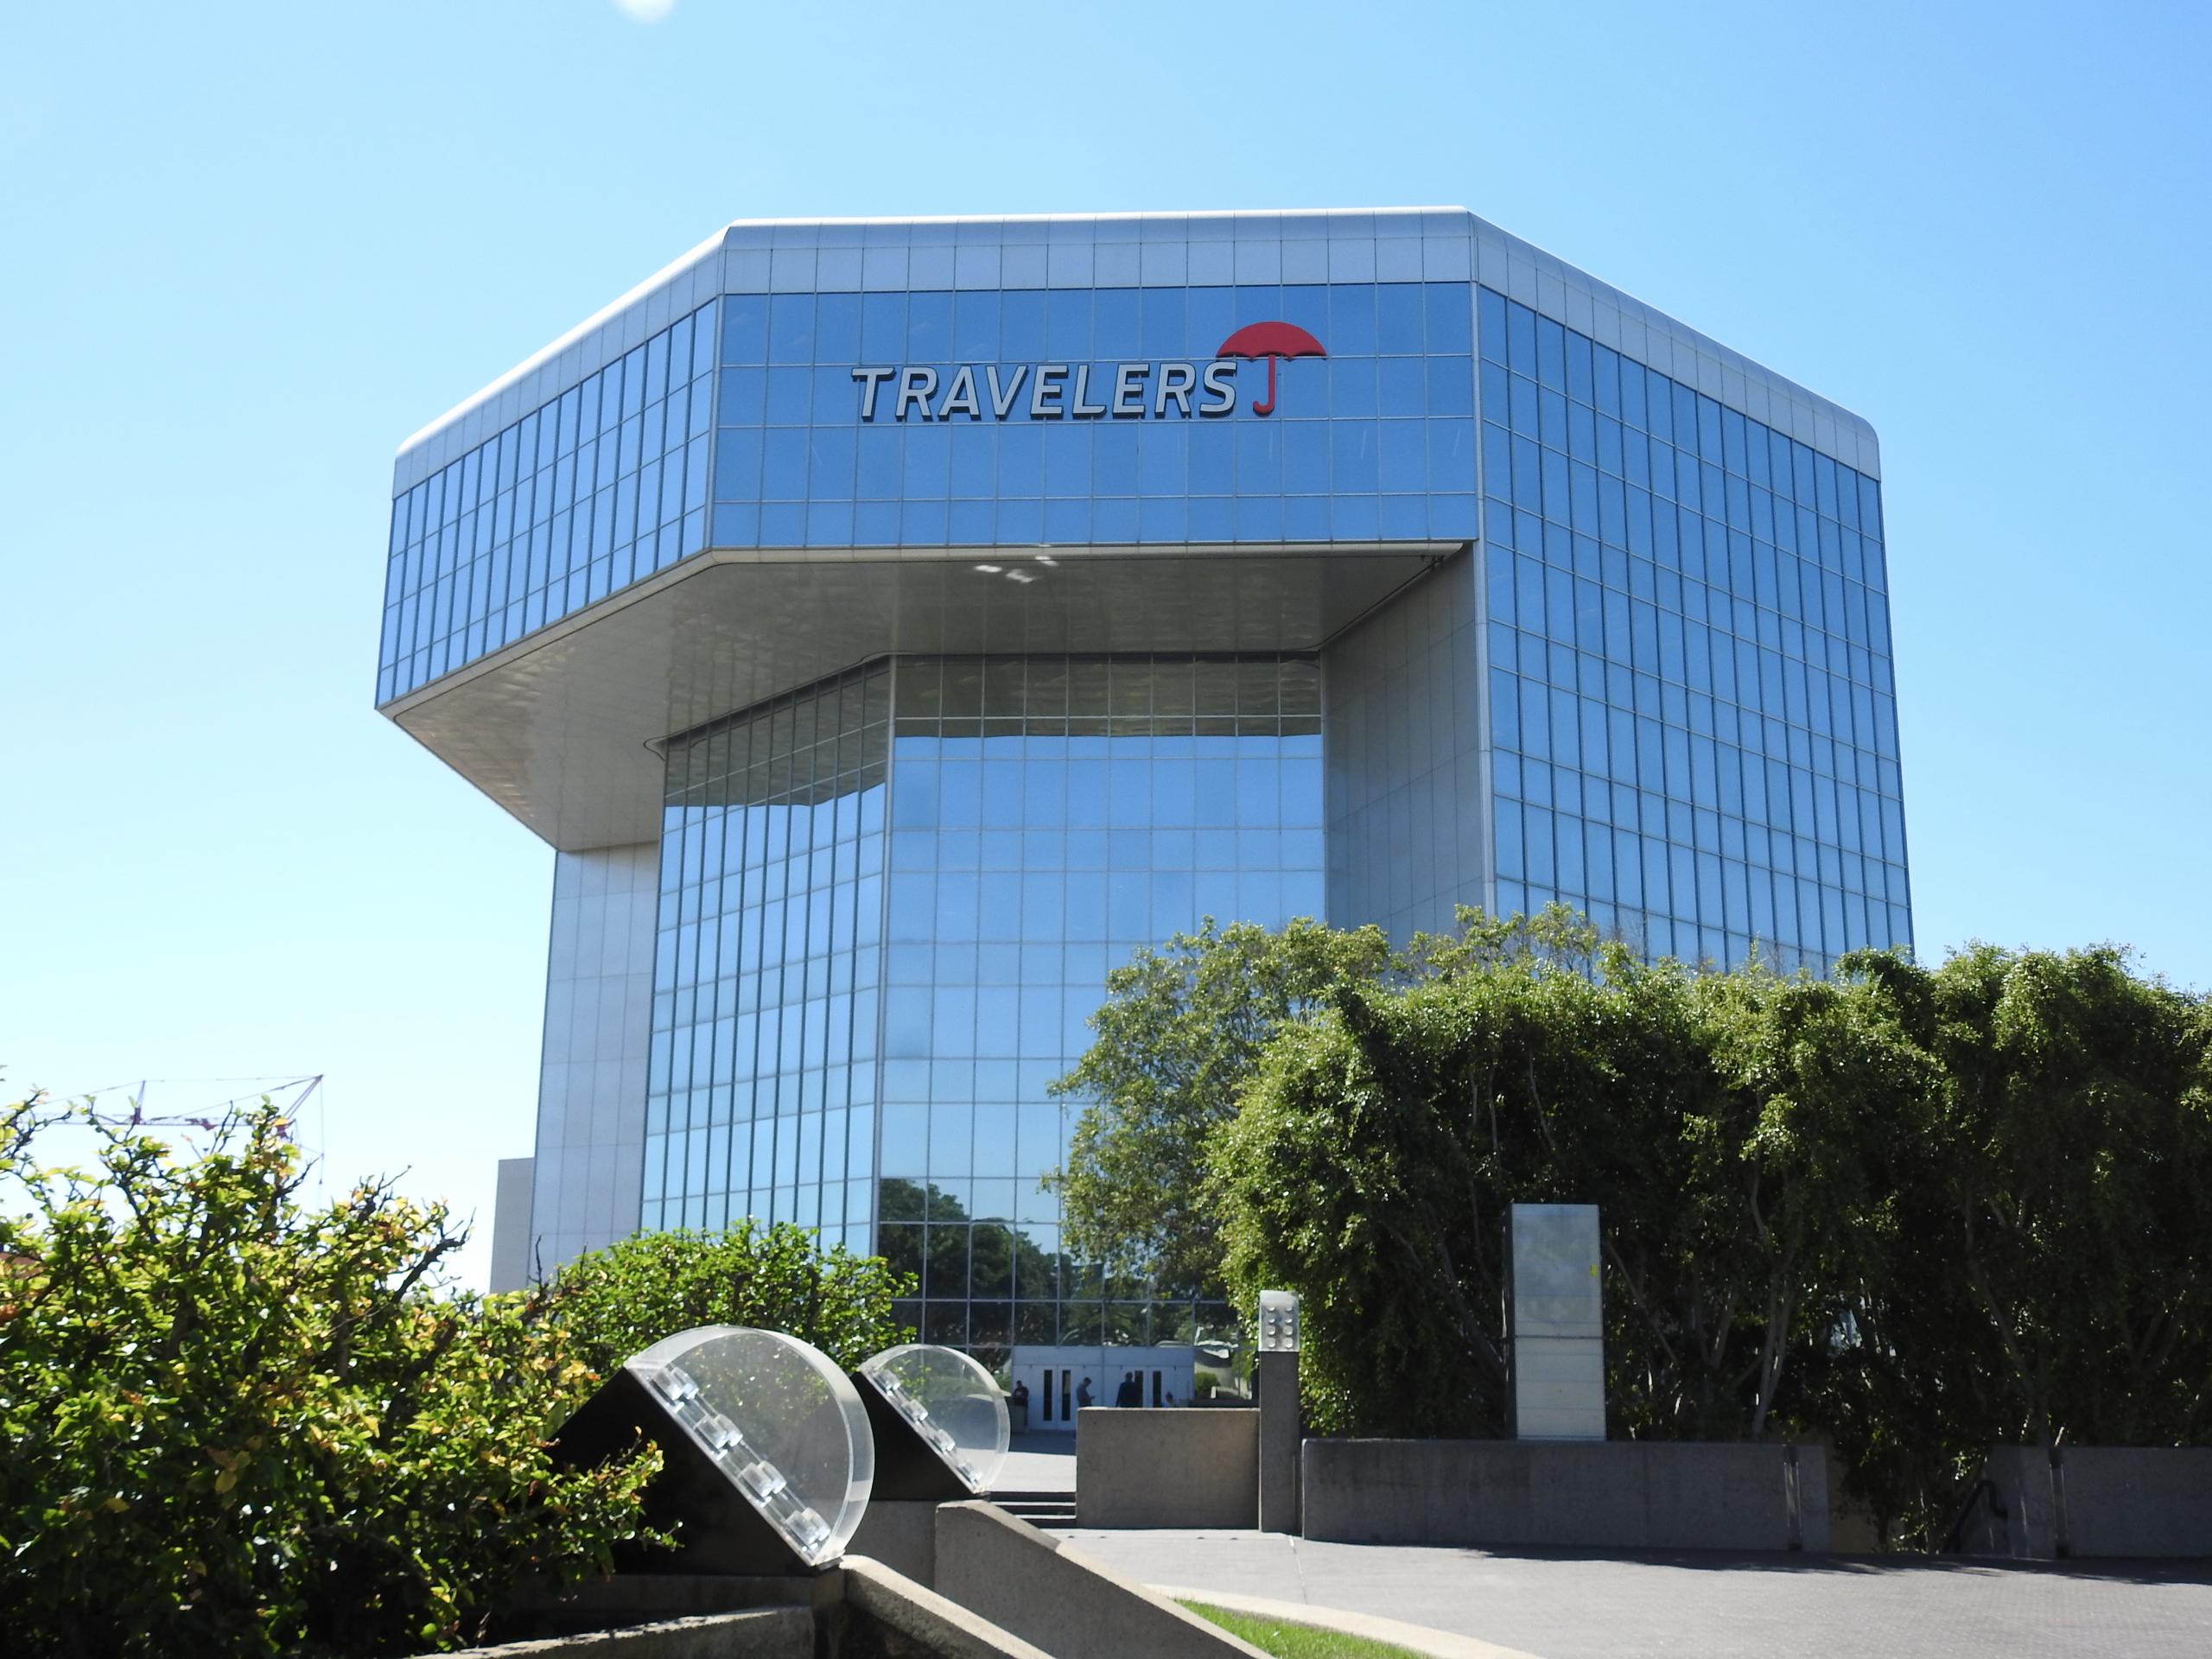 Travelers office in Irvine, California.